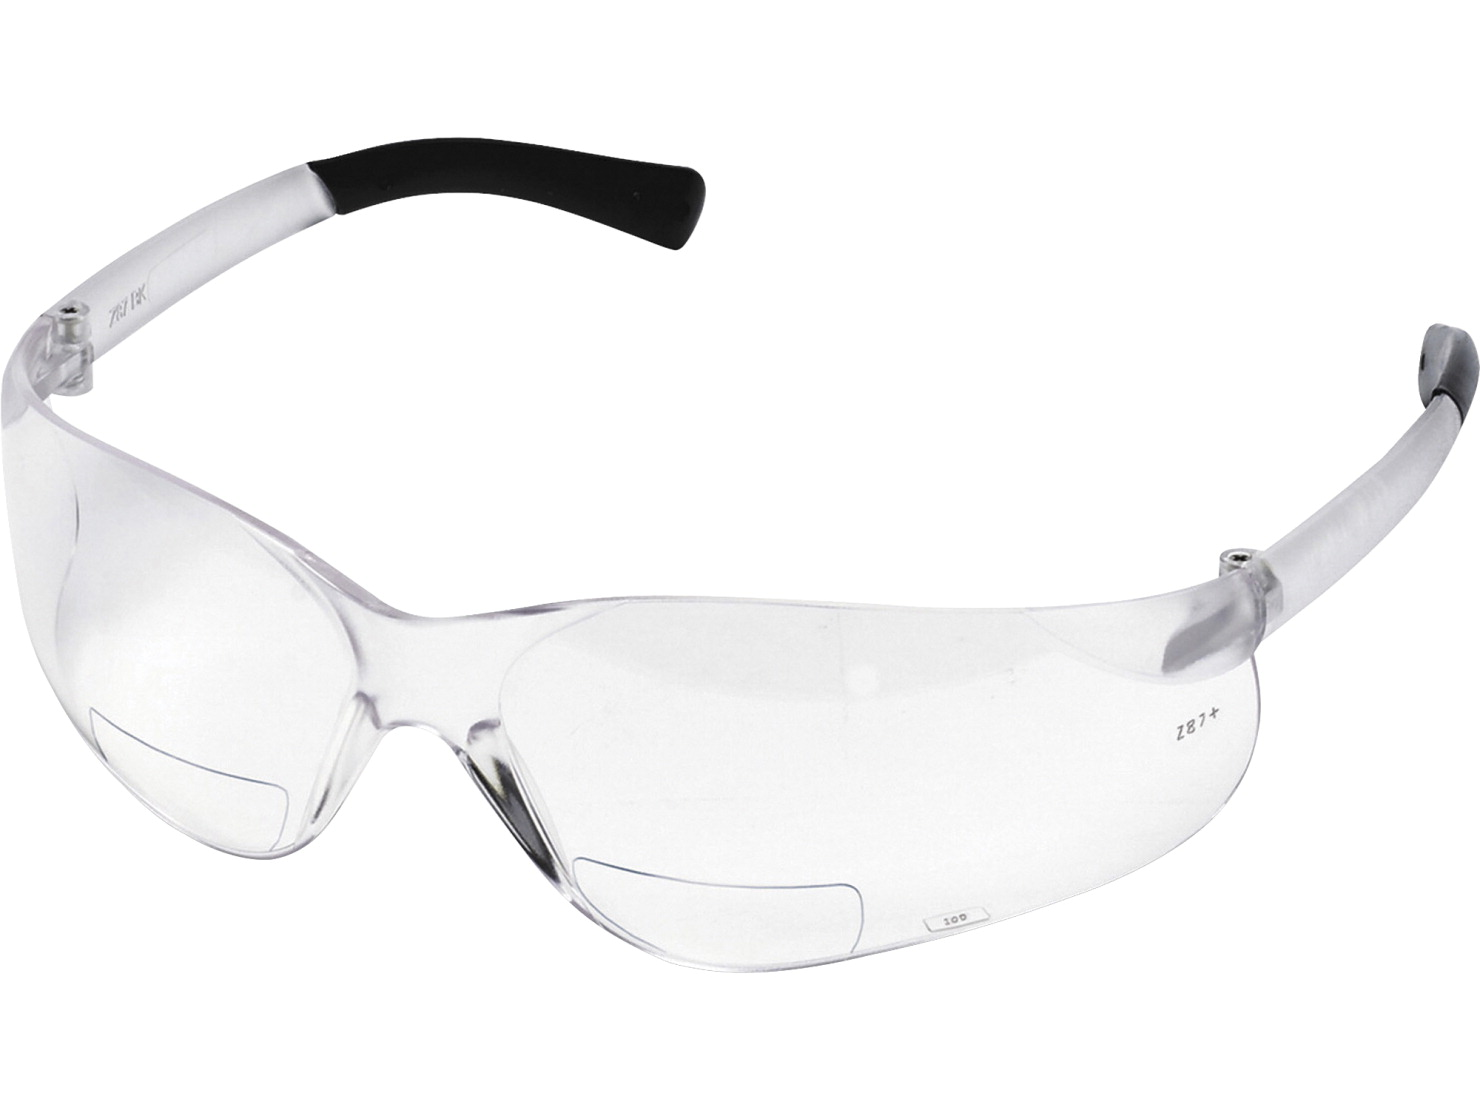 R3 Safety BearKat Magnifier Eyewear - Bearkat Magnifier Eyewear,w/ 1.5 Dioper,Padded Temple,Clear